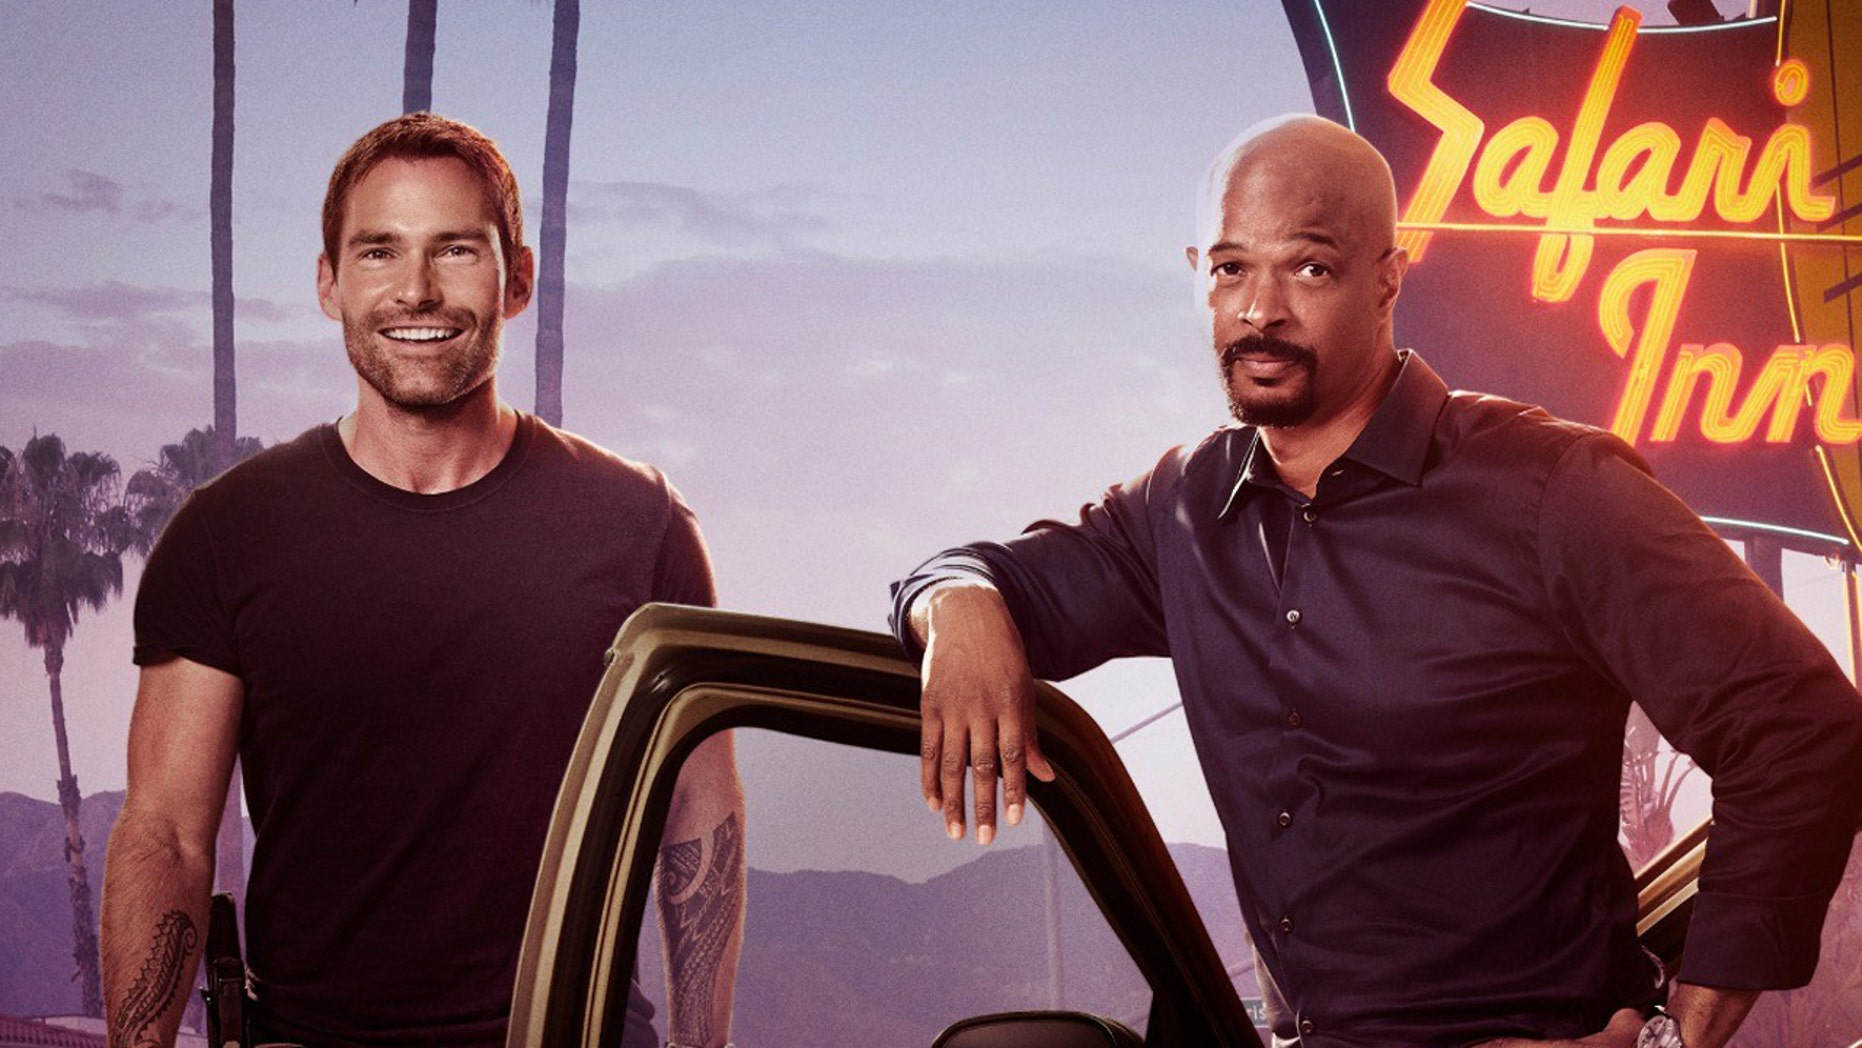 """Damon Wayans joins new co-host Seann William Scott in the Season 3 promo for """"Lethal Weapon"""" after Clayne Crawford's exit earlier this year."""